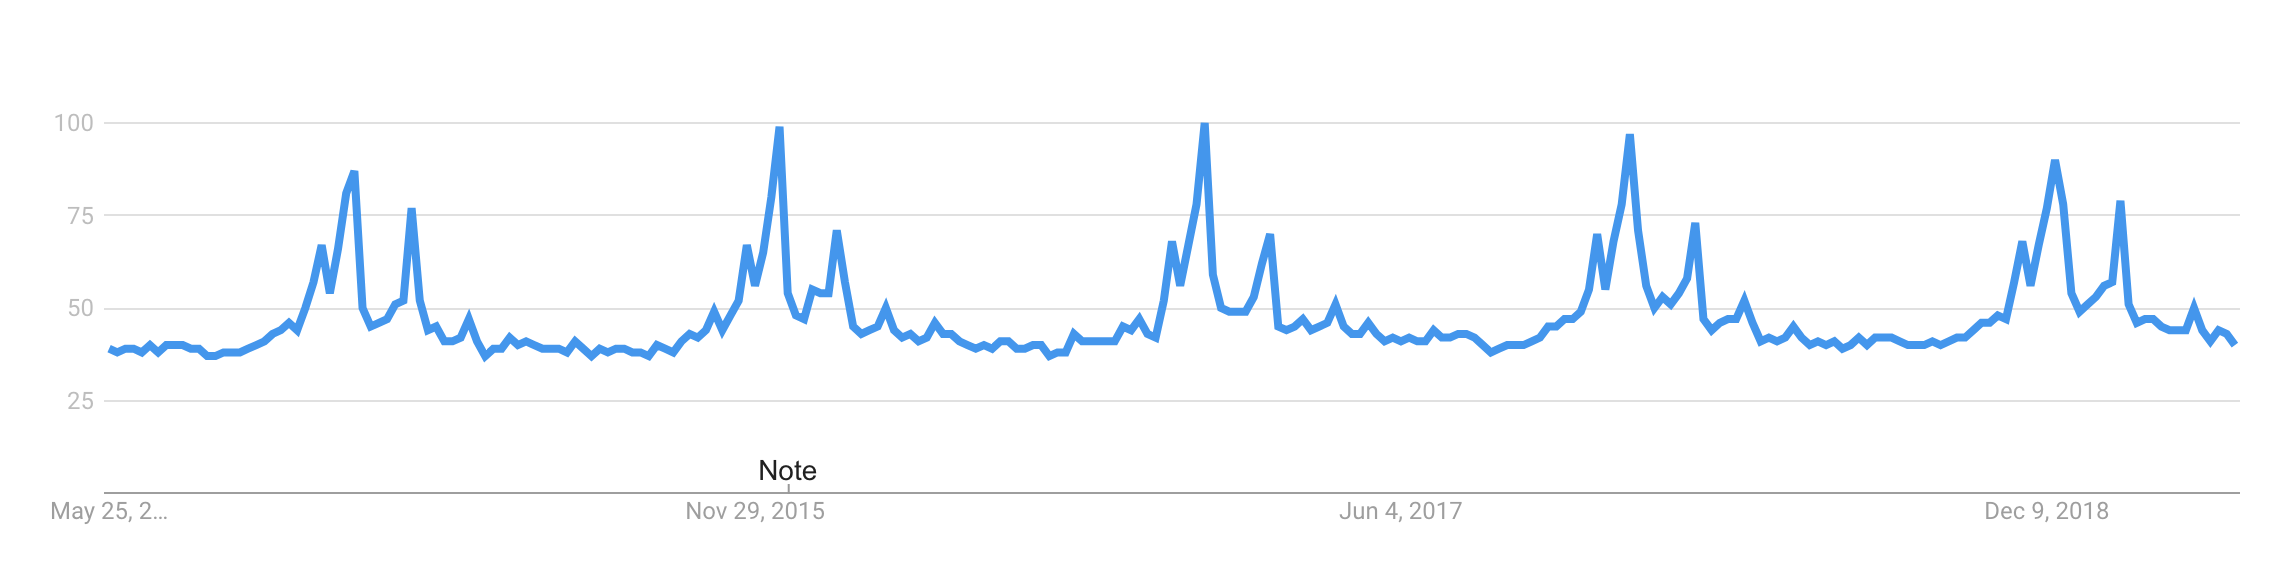 """Google 5-year trends for """"chocolate"""" with clear seasonality. Source: Google Trends."""